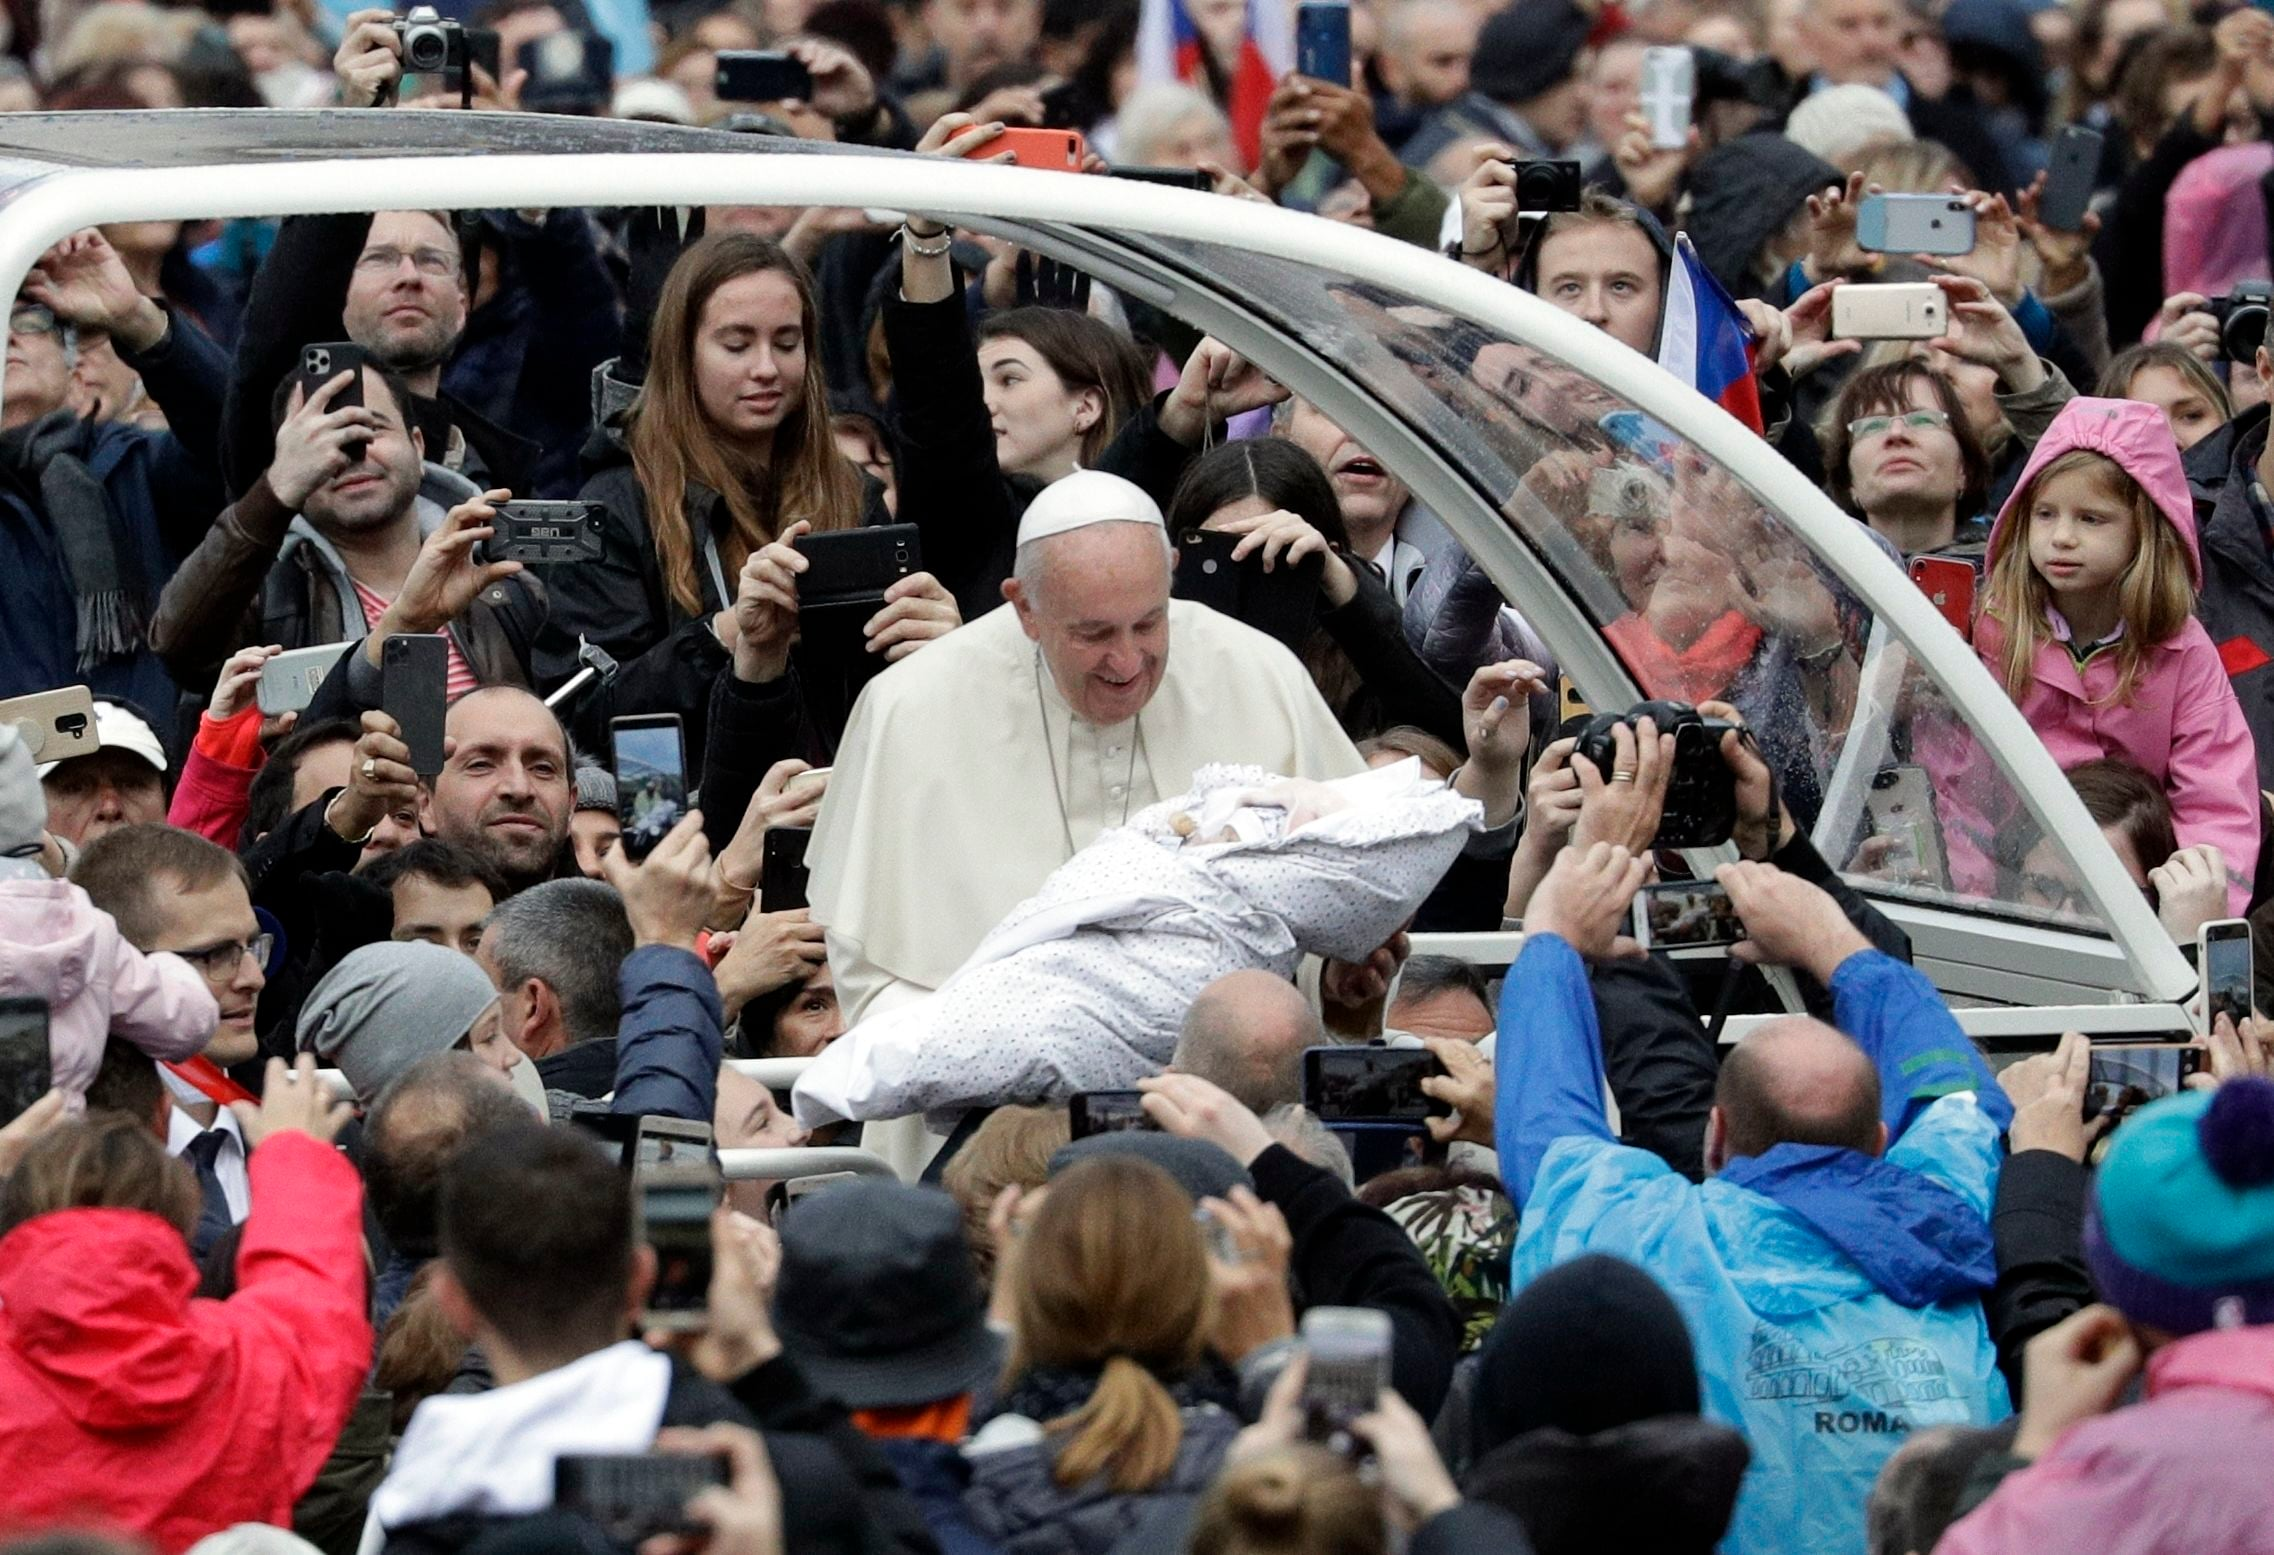 The Popemobile has been an integral part of how the Pope moves around - both at the Vatican and elsewhere as well. Times have seen the Popemobile go through massive changes. (AP Photo)